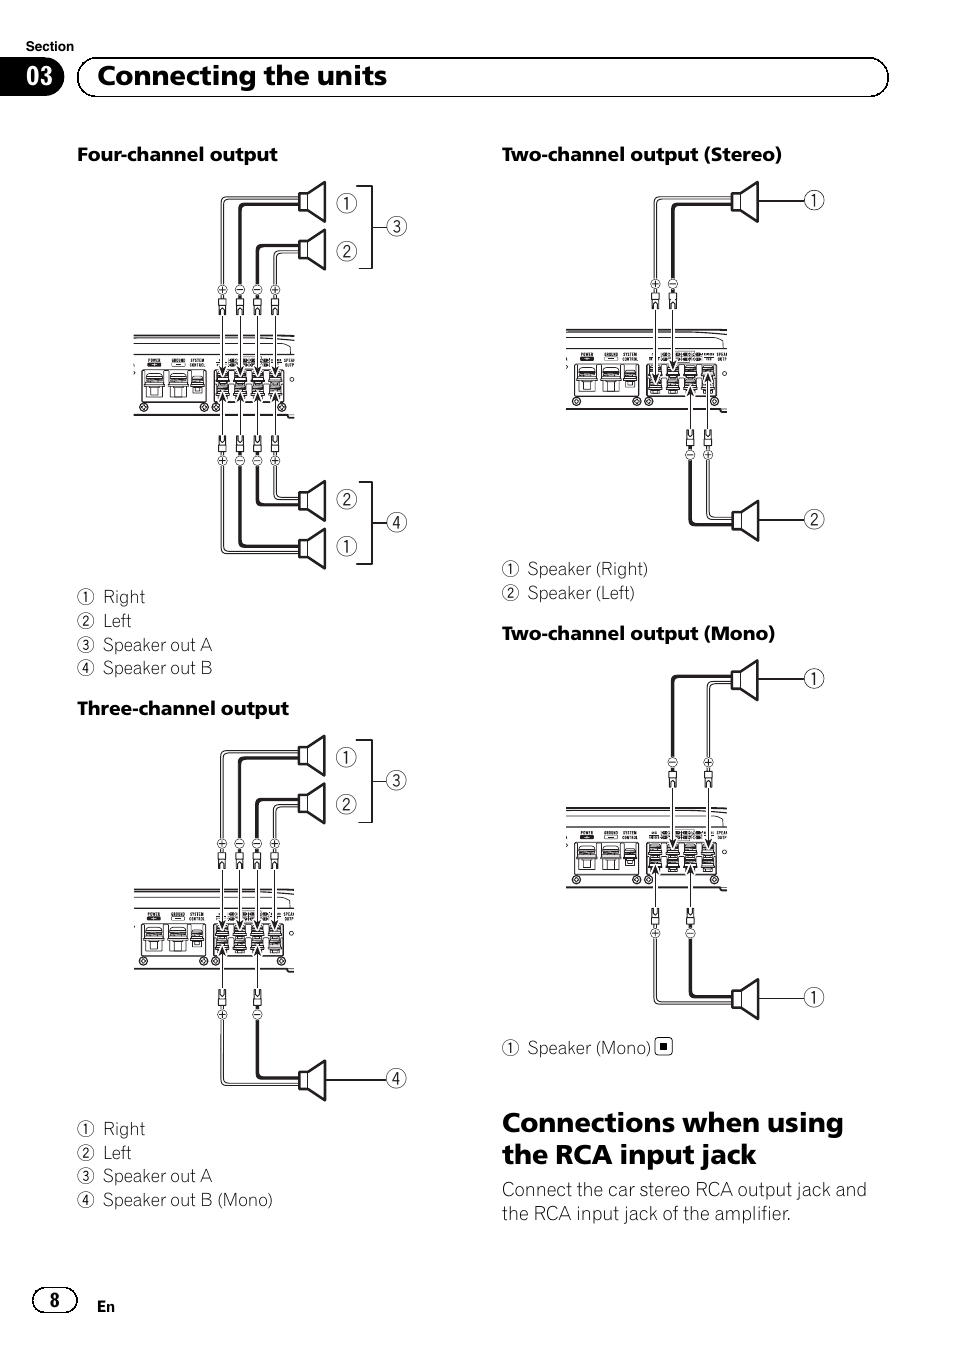 Connections when using the rca input jack, 03 connecting the units